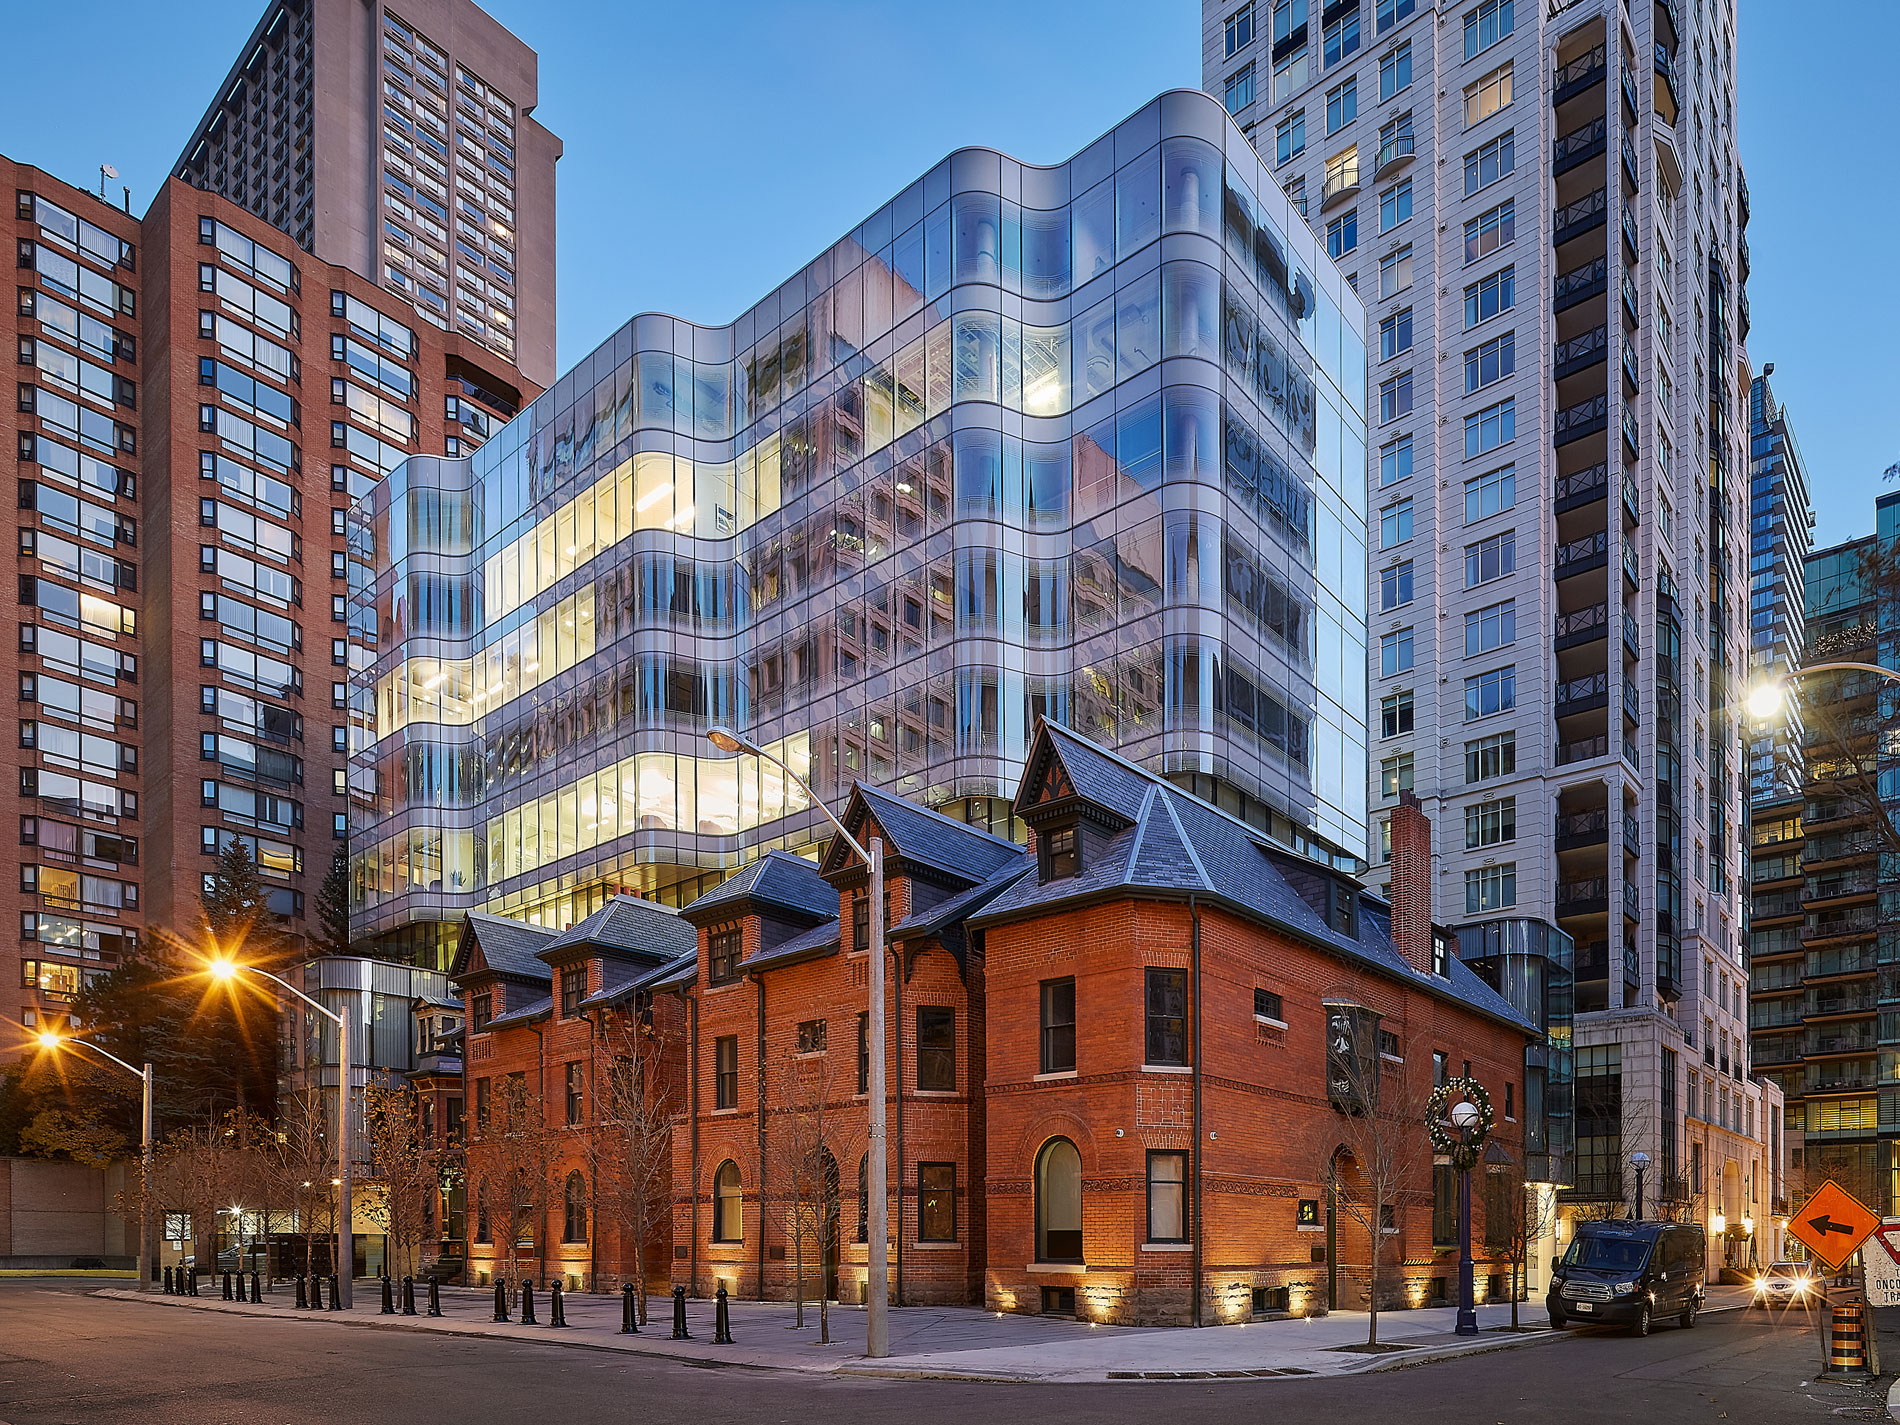 Night time view looking south-east - 7 St. Thomas by Hariri Pontarini Architects